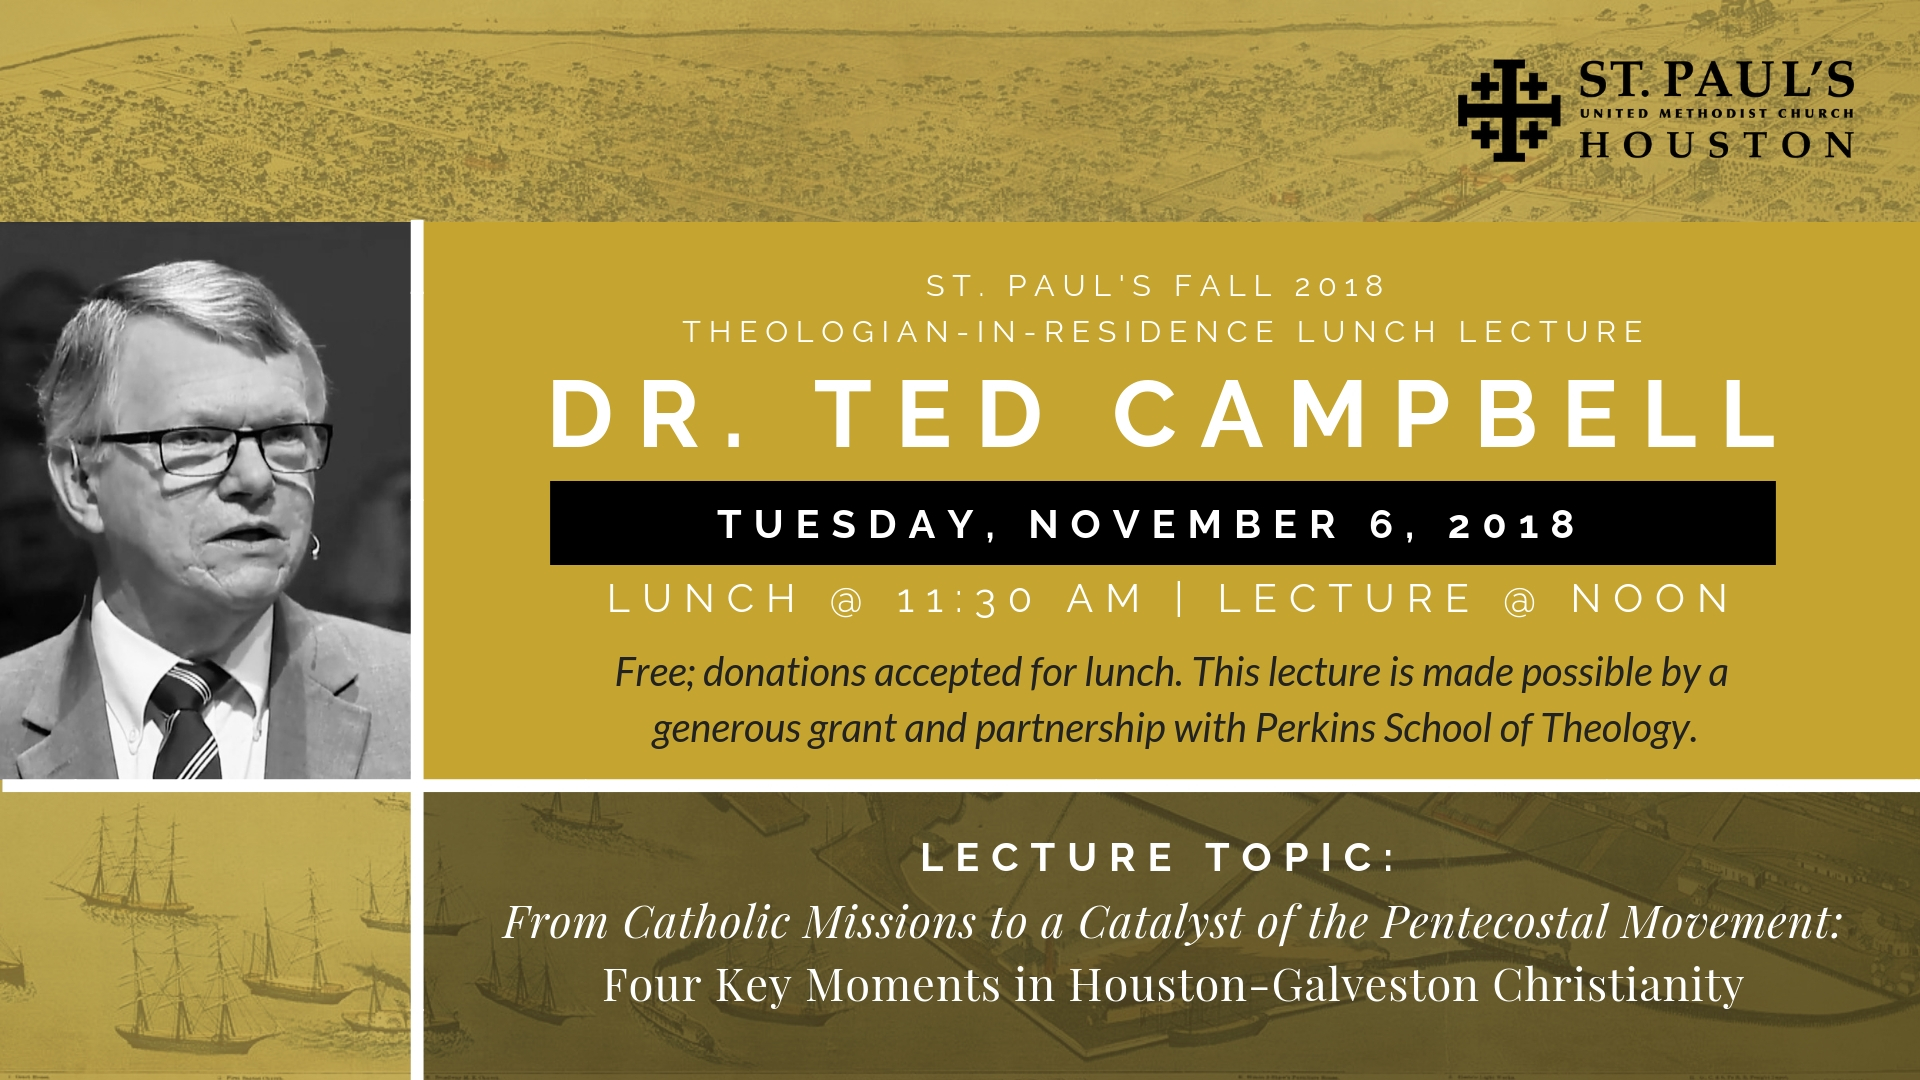 16x9 Lunch Lecture - Ted Campbell.jpg